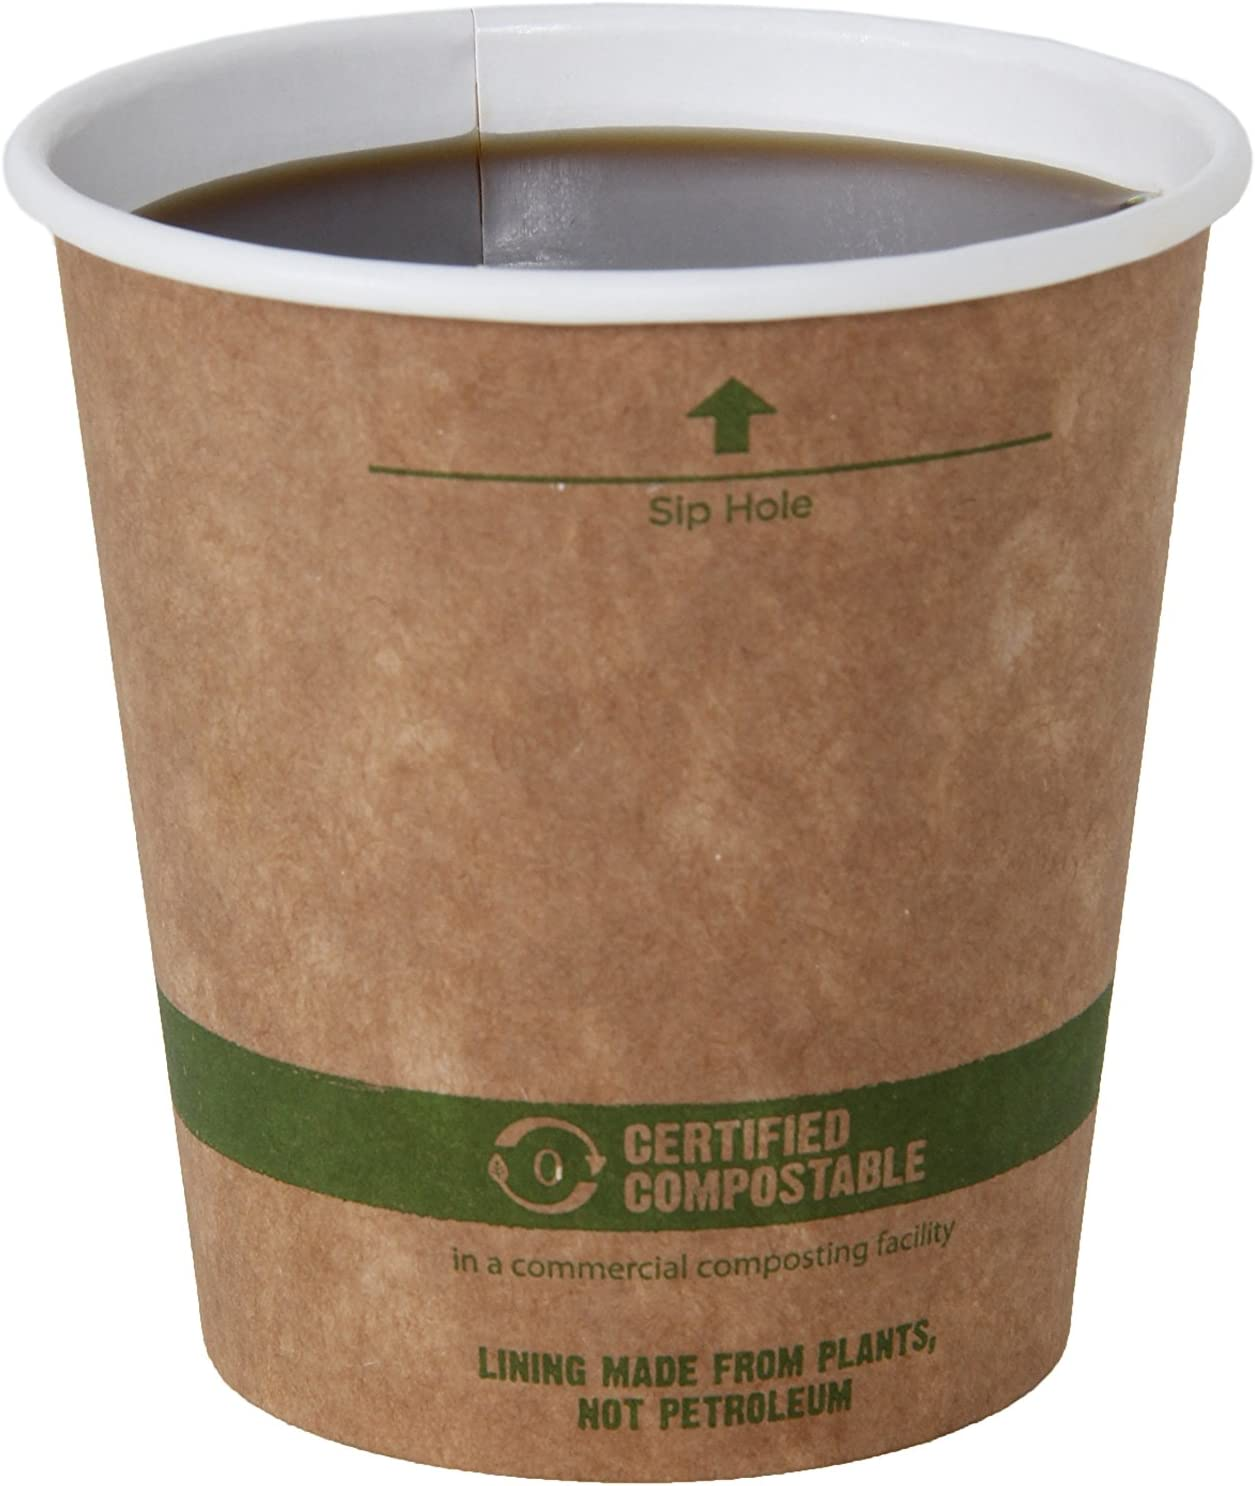 World Centric 100% Biodegradable Compostable latest PLA-Lin Paper Max 51% OFF